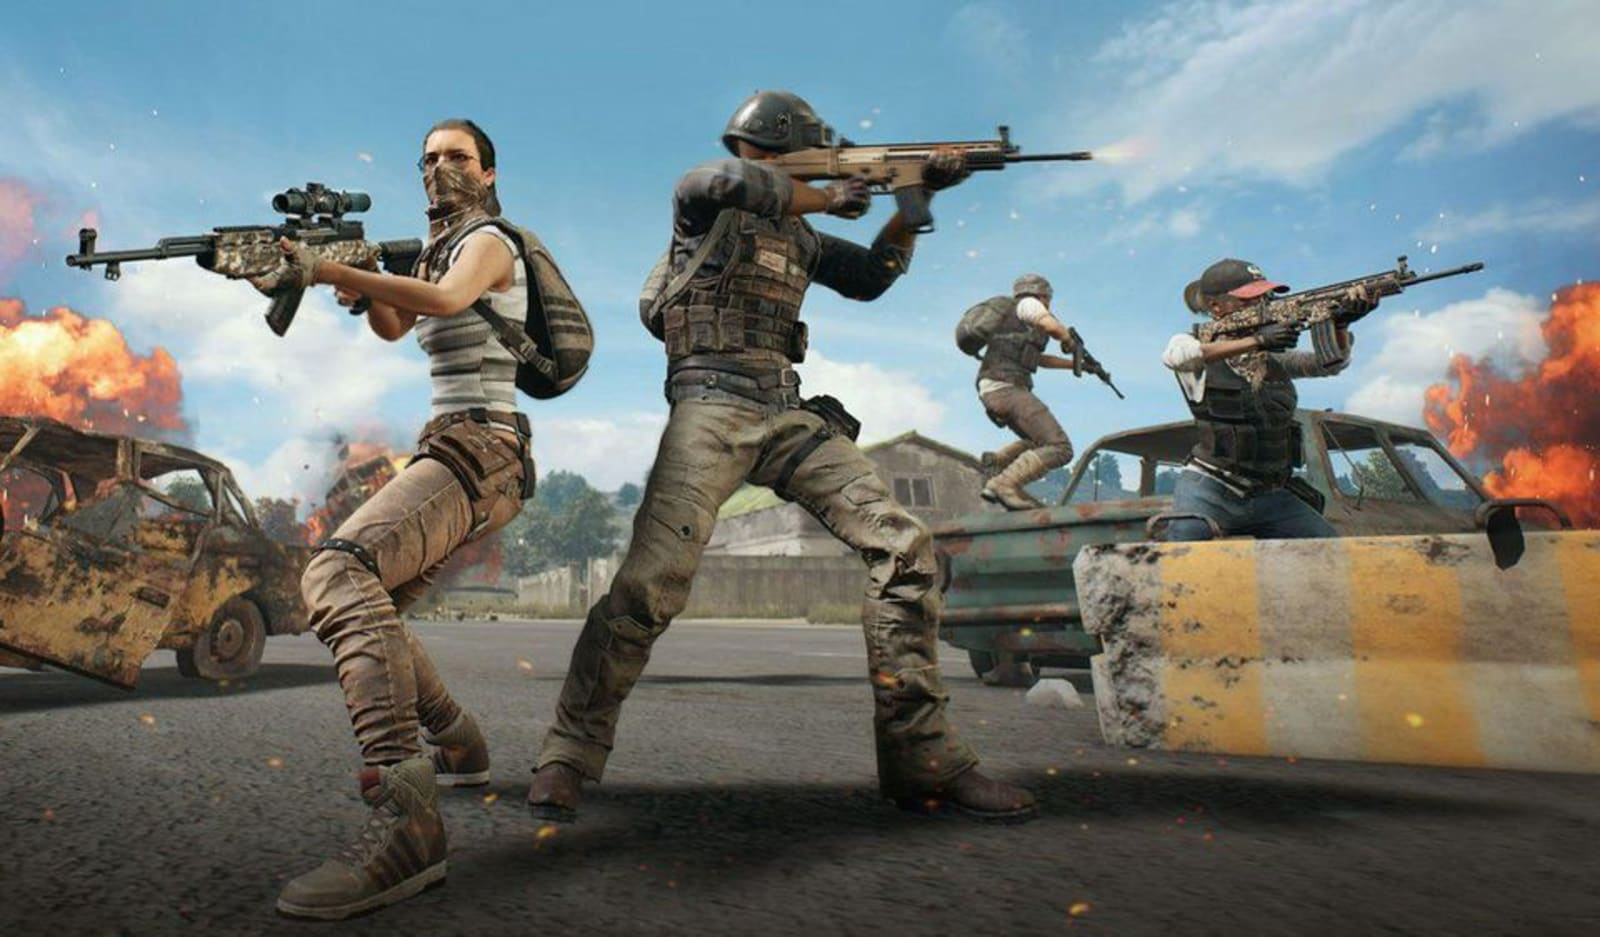 'PUBG' will support crossplay on PS4 and Xbox One in October